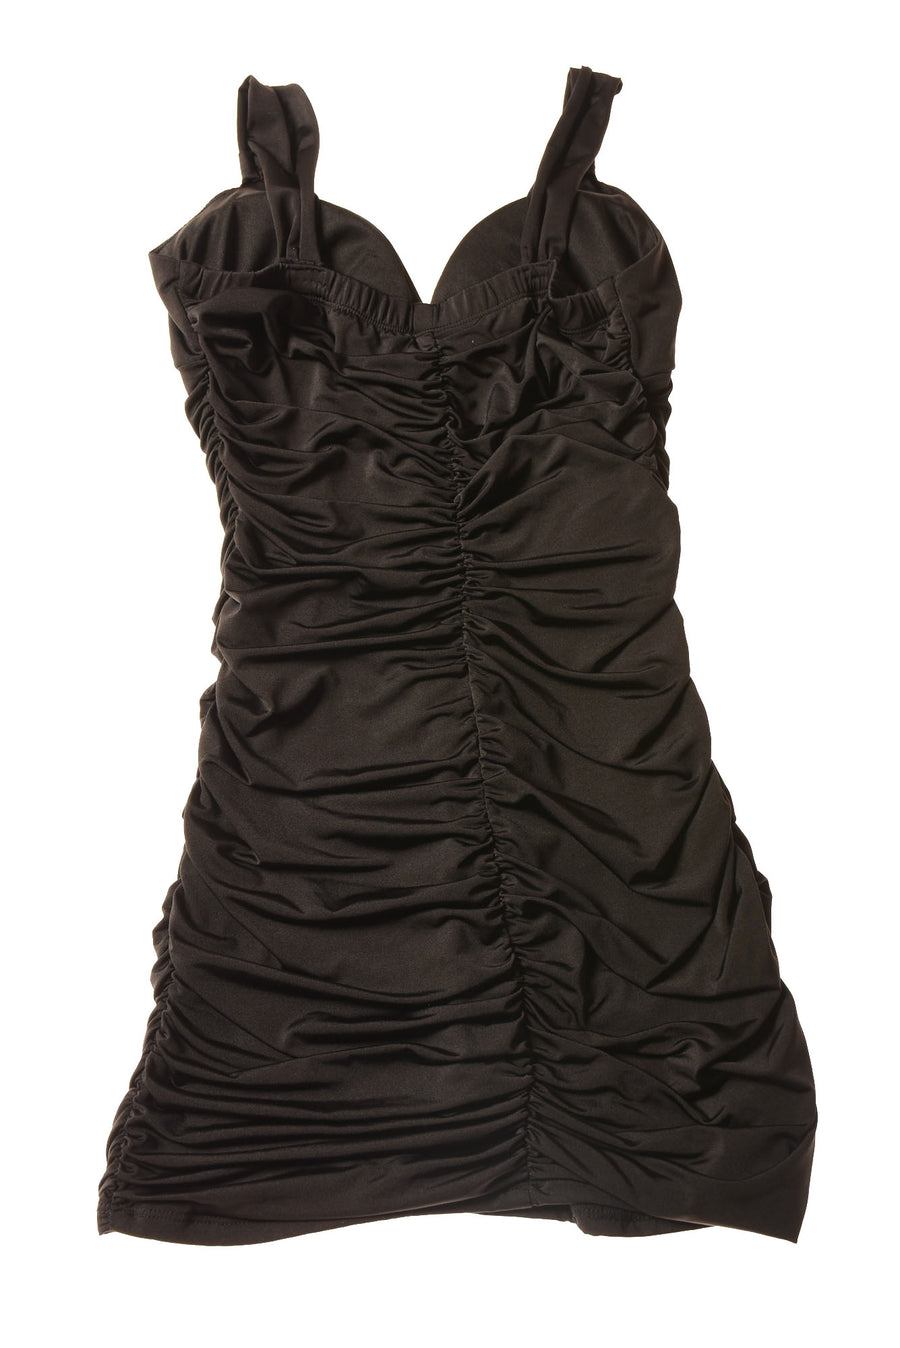 USED Charlotte Russe Women's Dress Medium Black